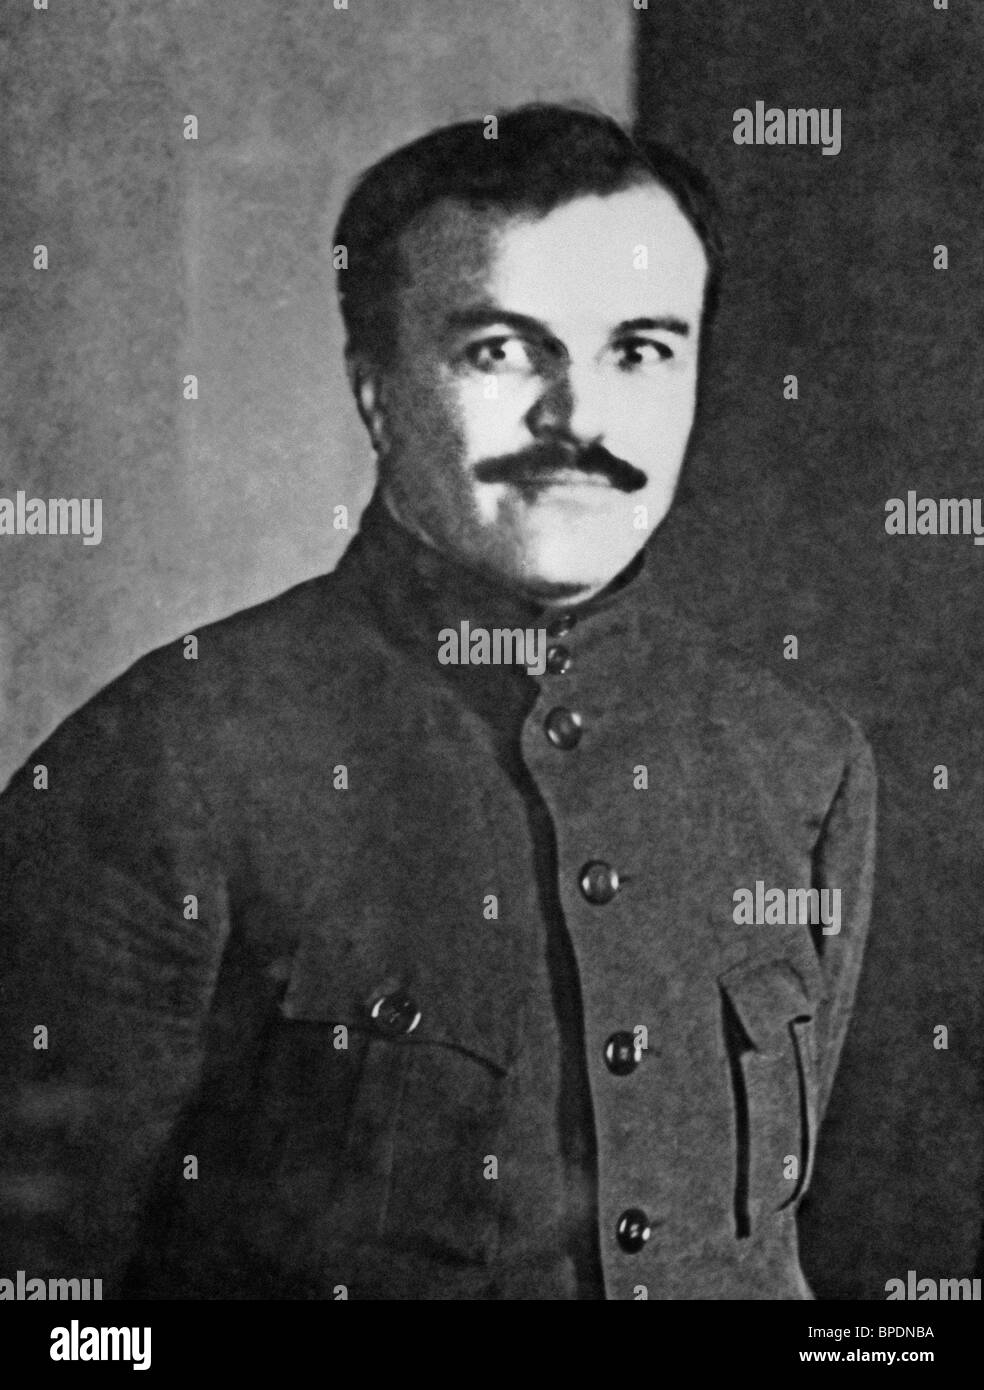 Soviet politician and diplomat Vyacheslav Mikhailovich Molotov, 1925 Stock Photo